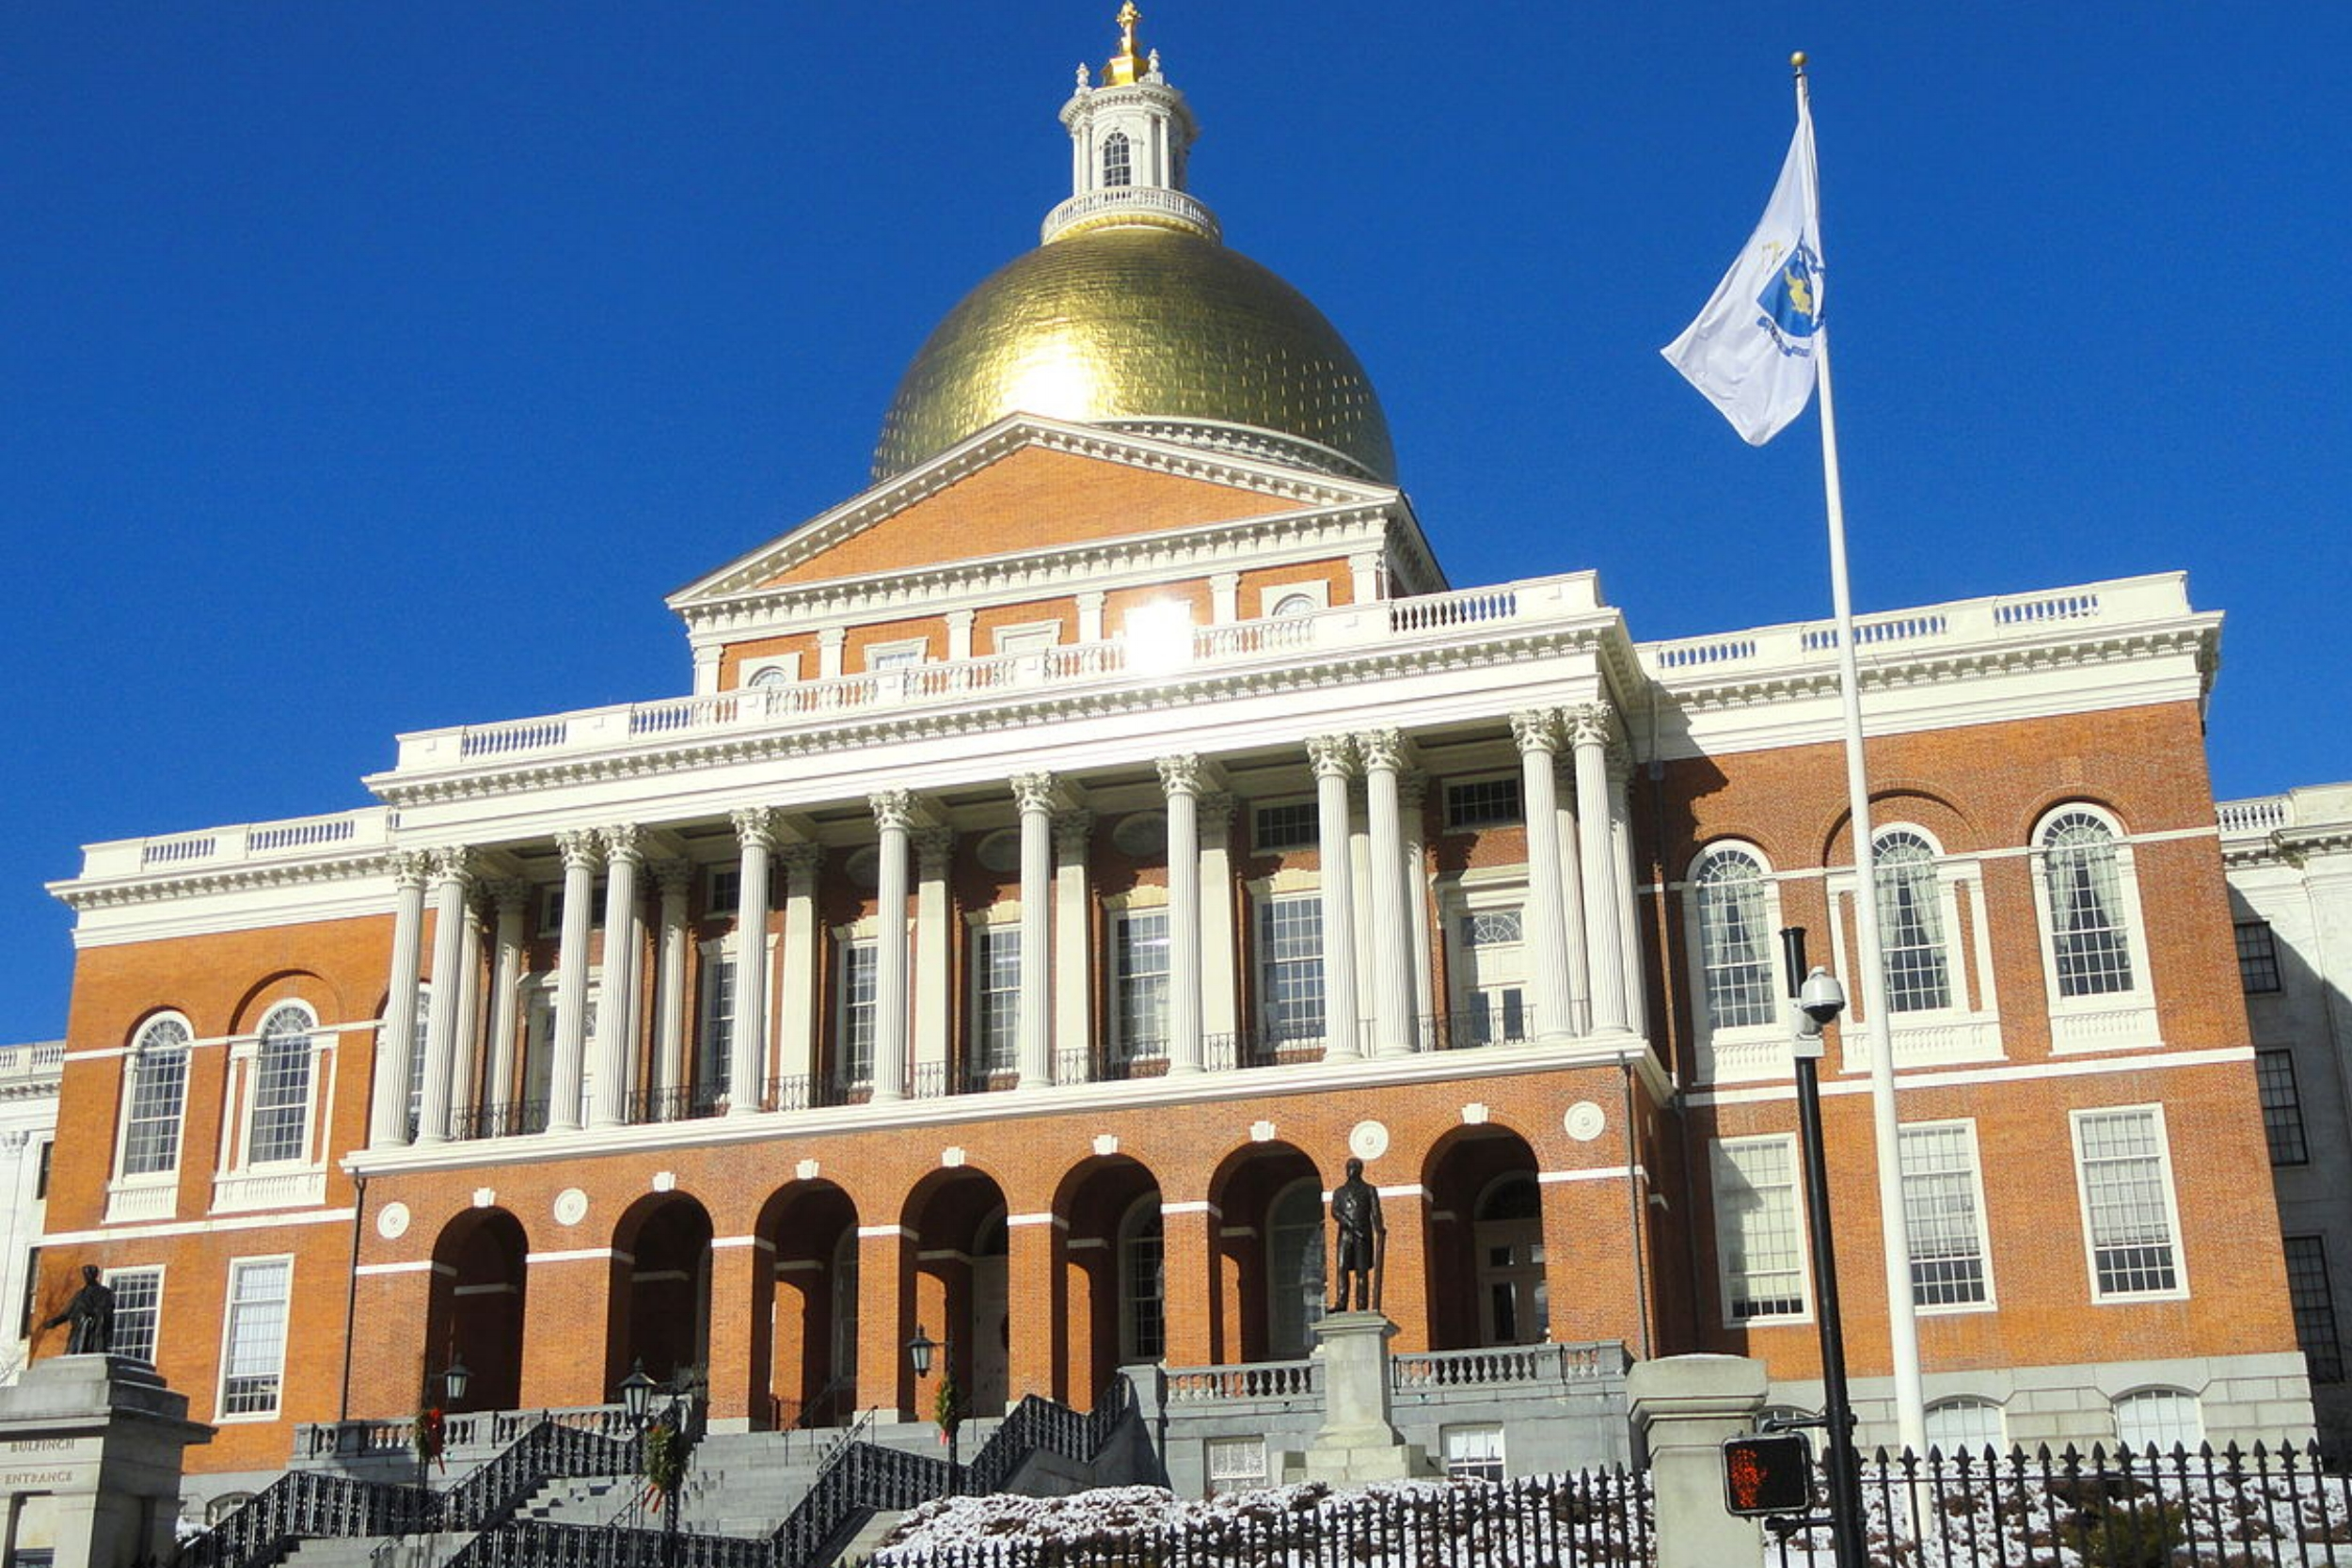 Massachusetts_State_House_-_Boston,_MA_-_DSC04664.JPG